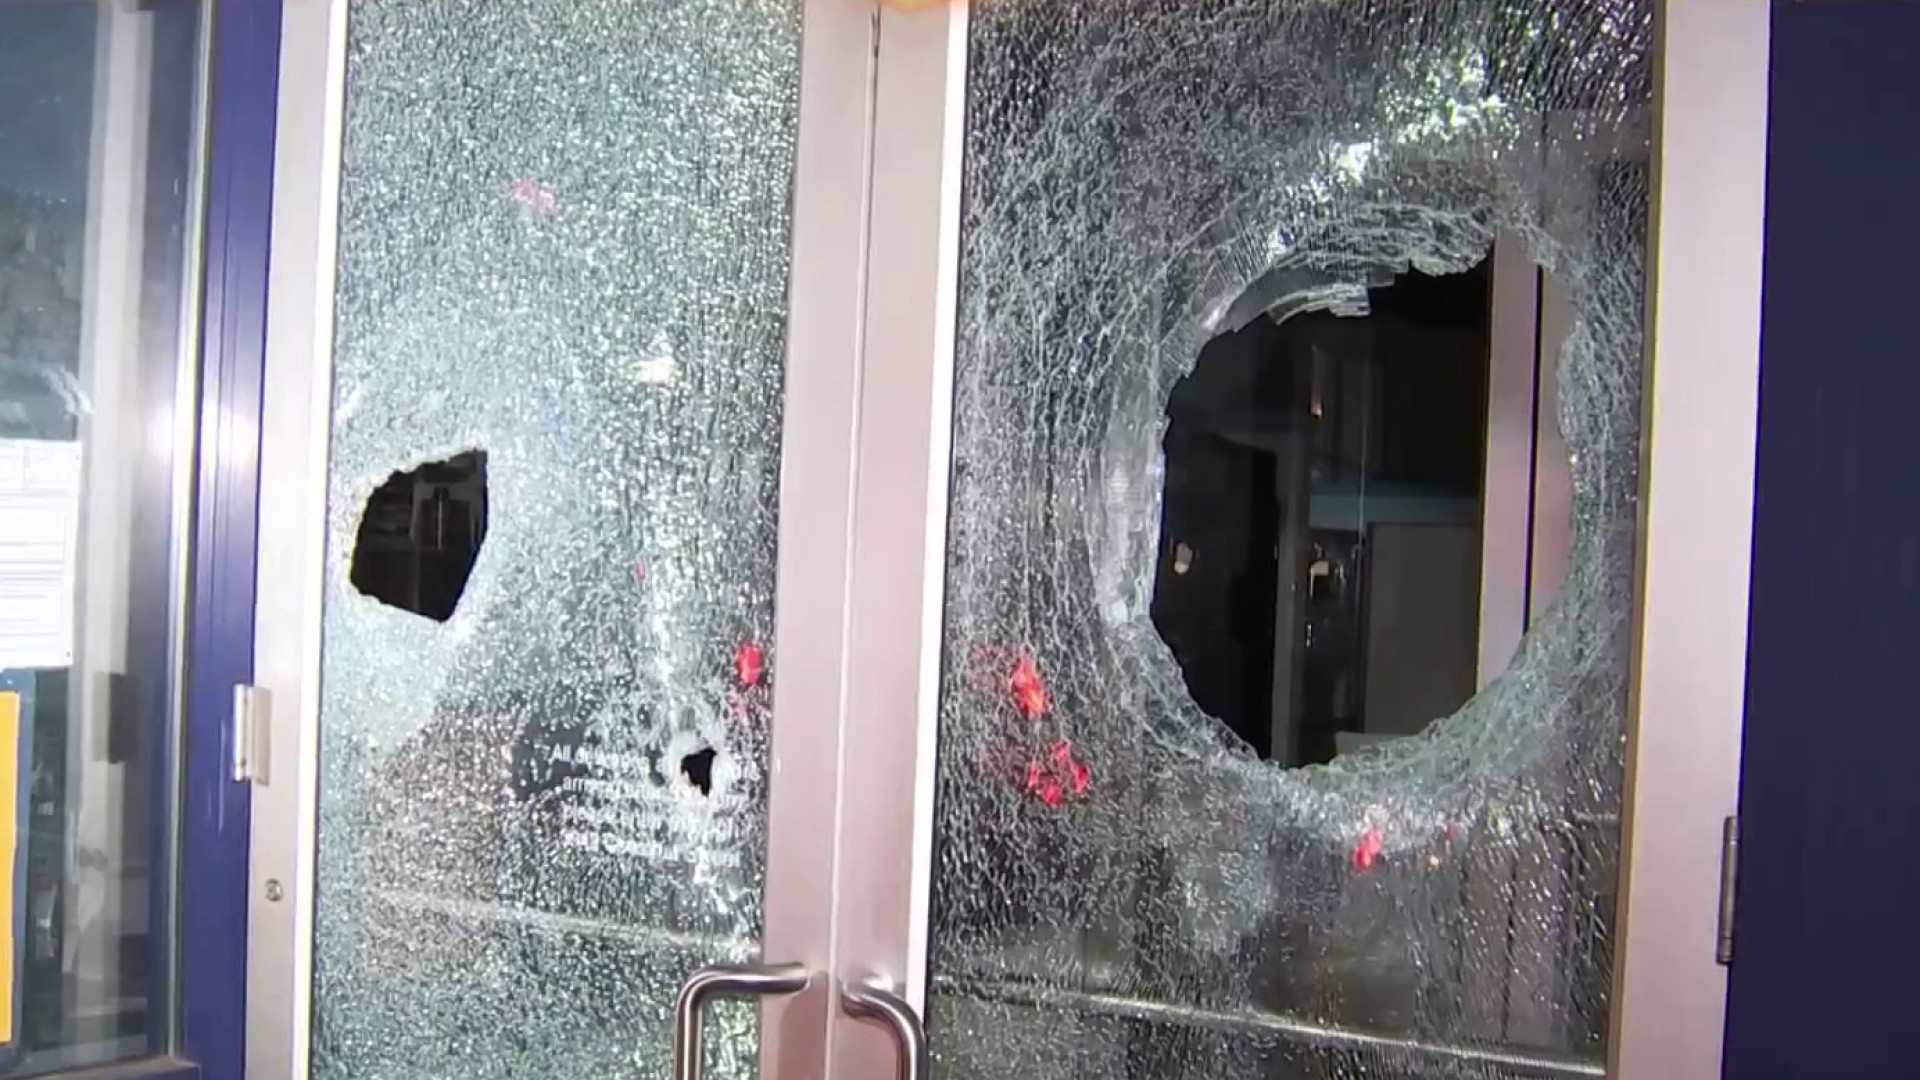 30 Police Officers Injured During Hours-Long Unrest In West Philadelphia  After Fatal Police-Involved Shooting – CBS Philly - News Chant USA